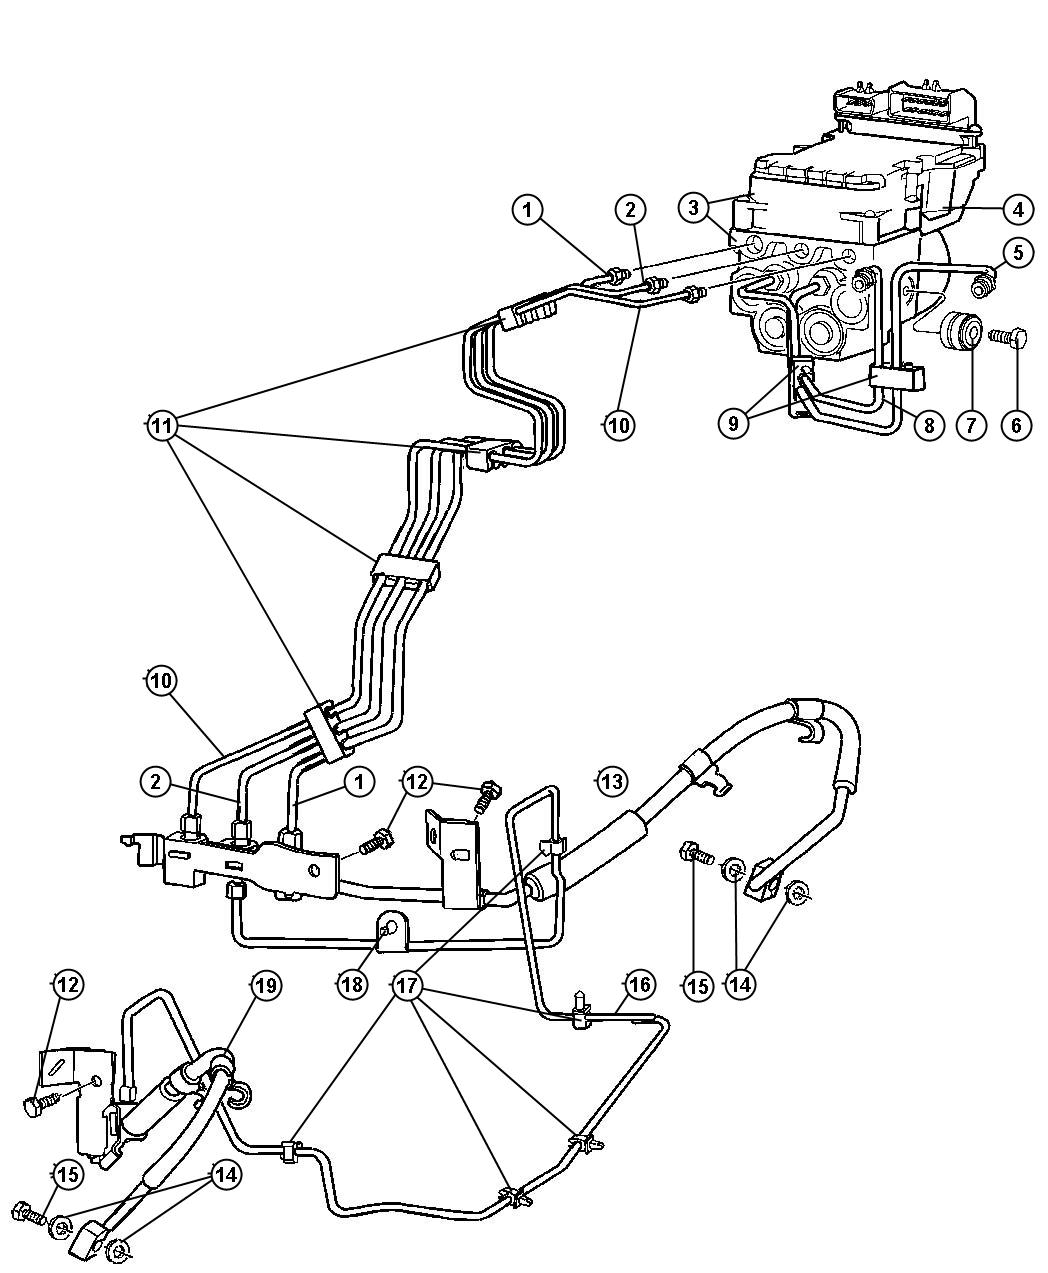 further 01w7d Replace Serpentine Belt 2000 Chevy Impala additionally 1999 Chrysler Sebring Heater Hose Diagram as well 2000 Ford F350 Superduty Under Dash Fuse Panel Diagram further 231694864892. on 06 ram 1500 accessories